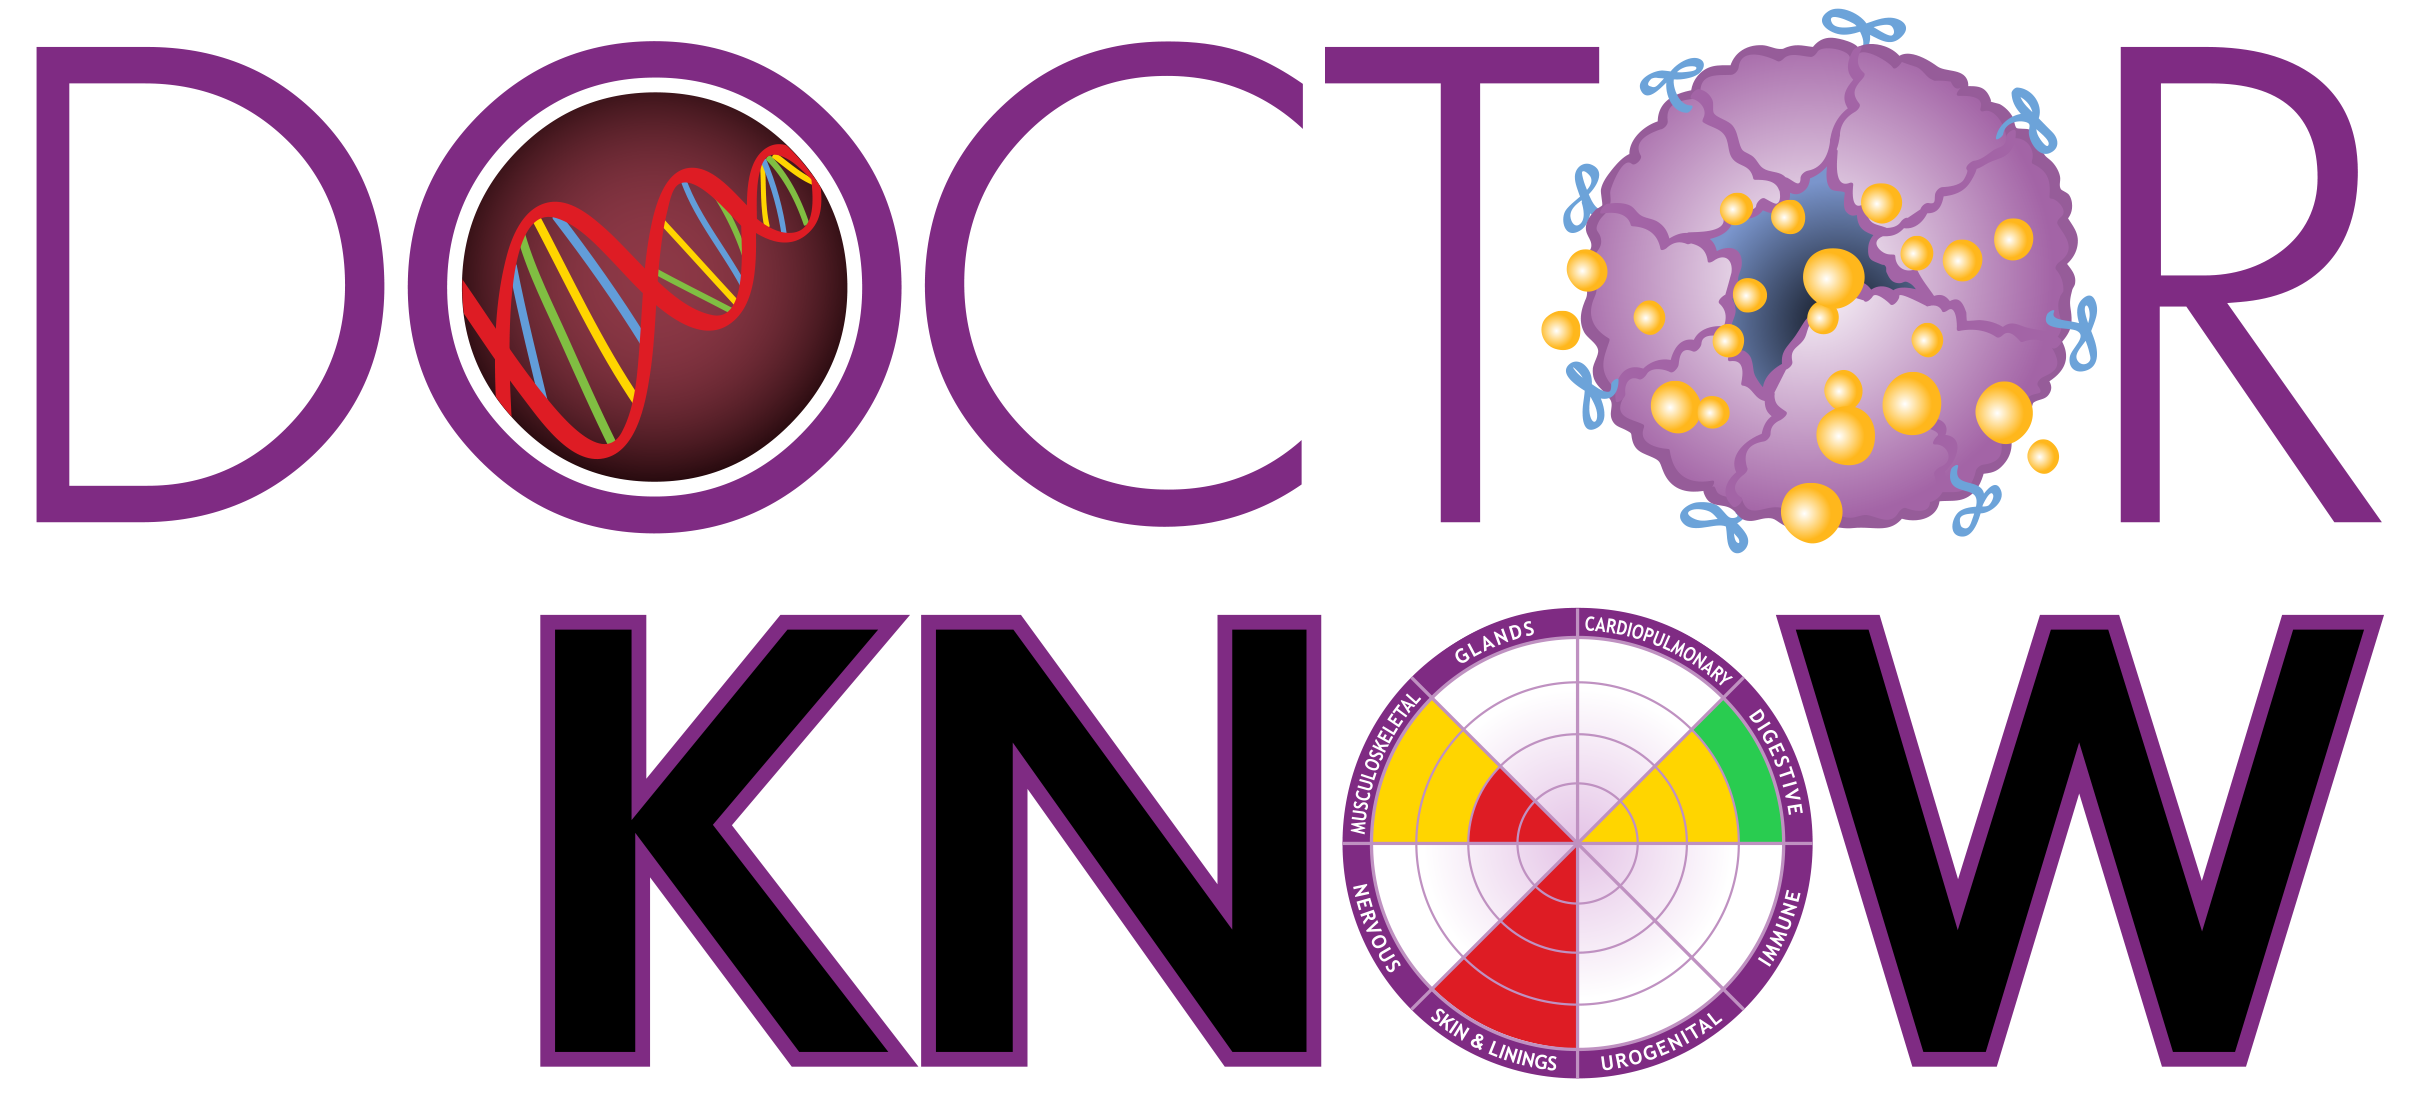 Dr. Know header image